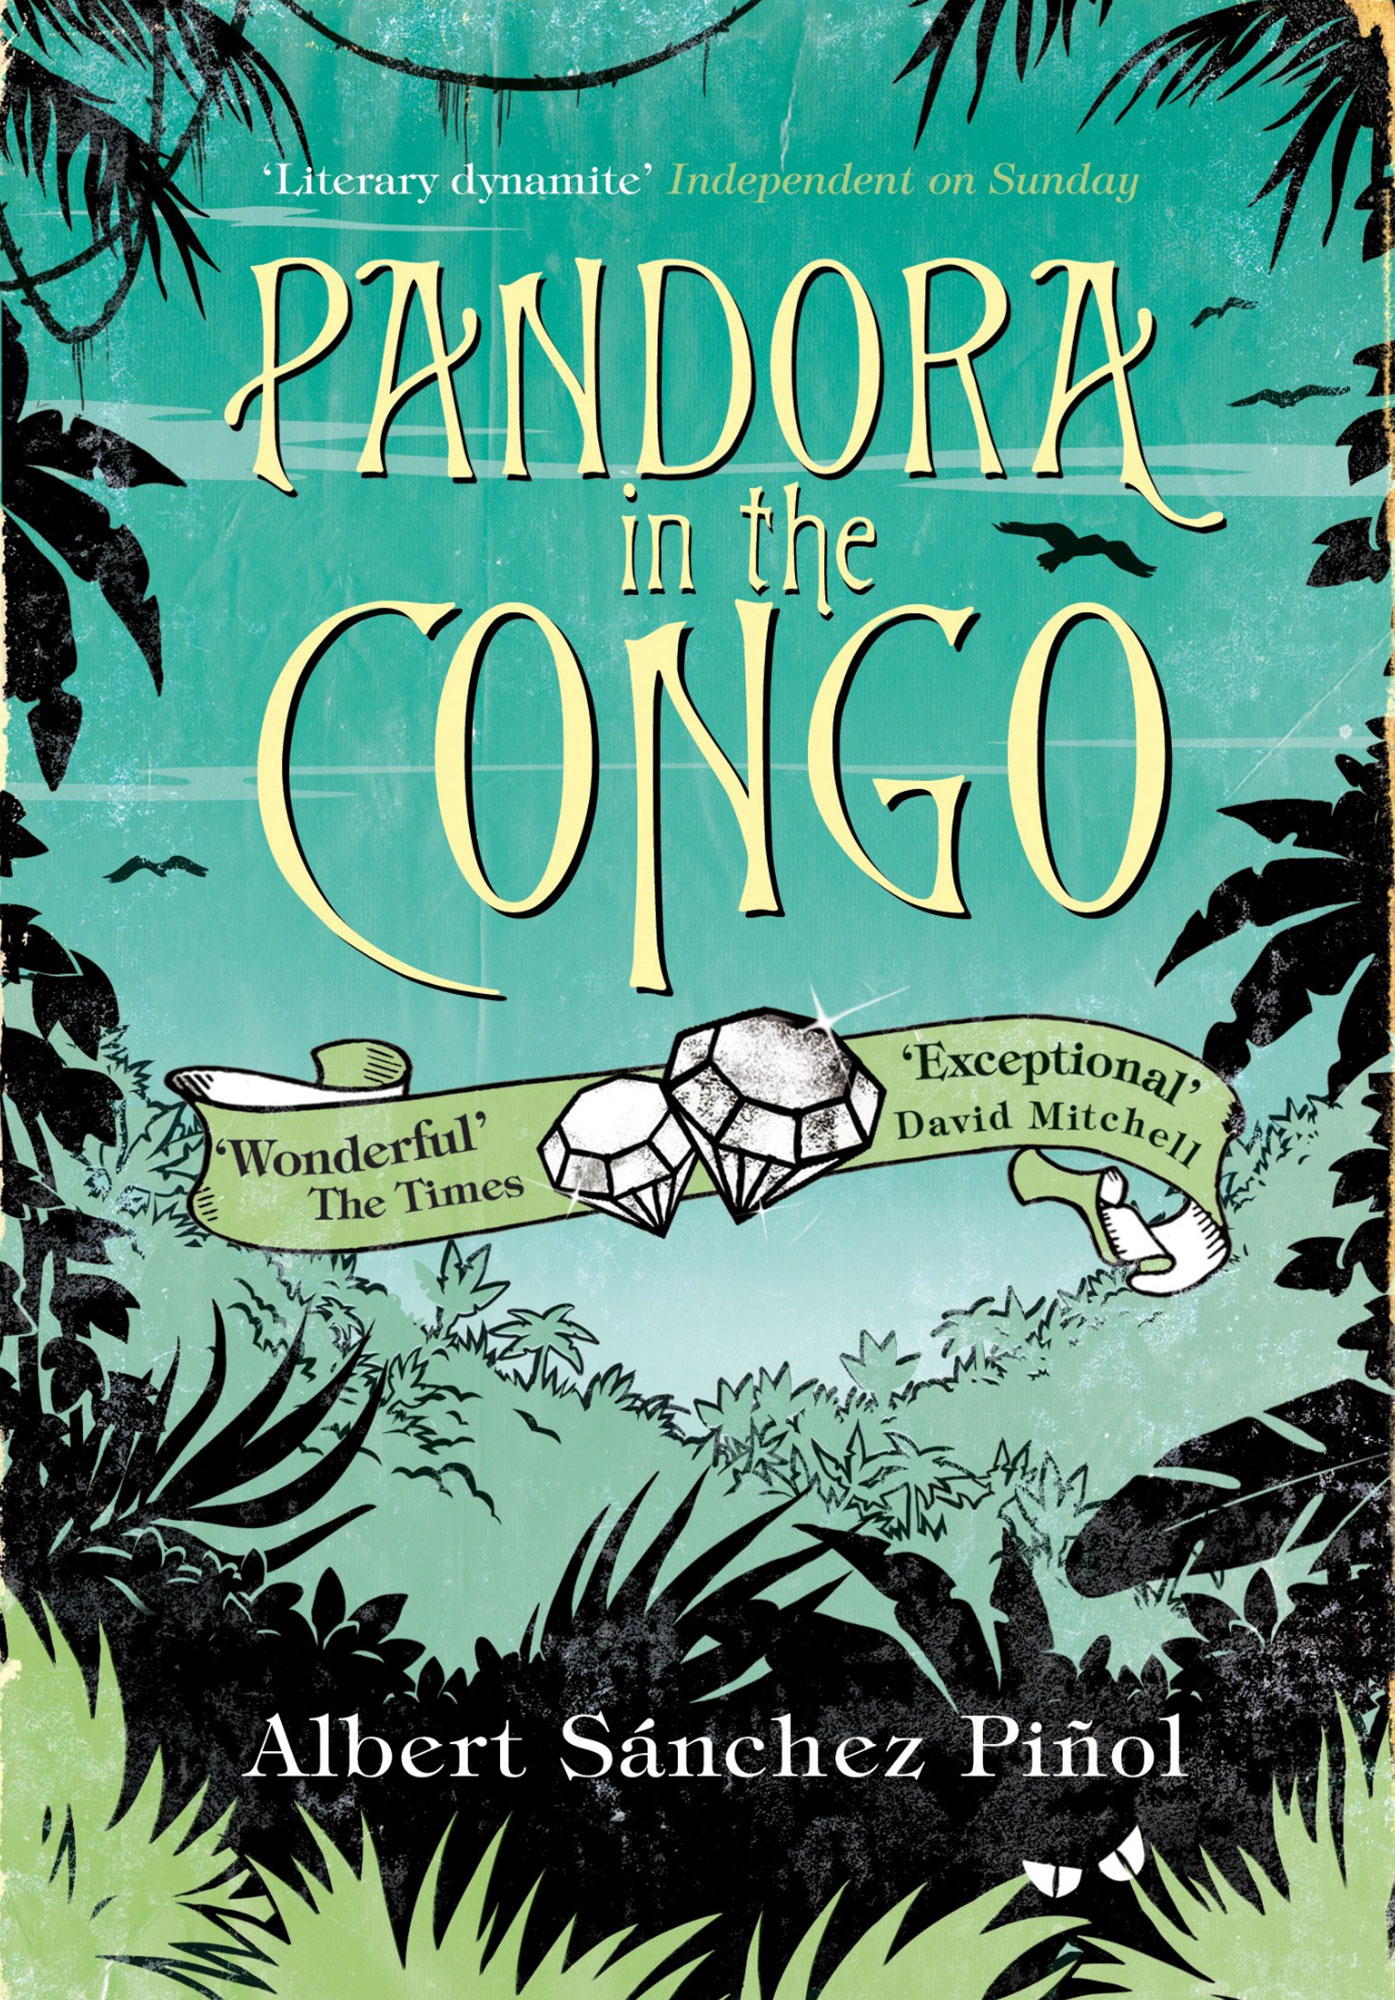 Pandora-in-the-Congo.jpg